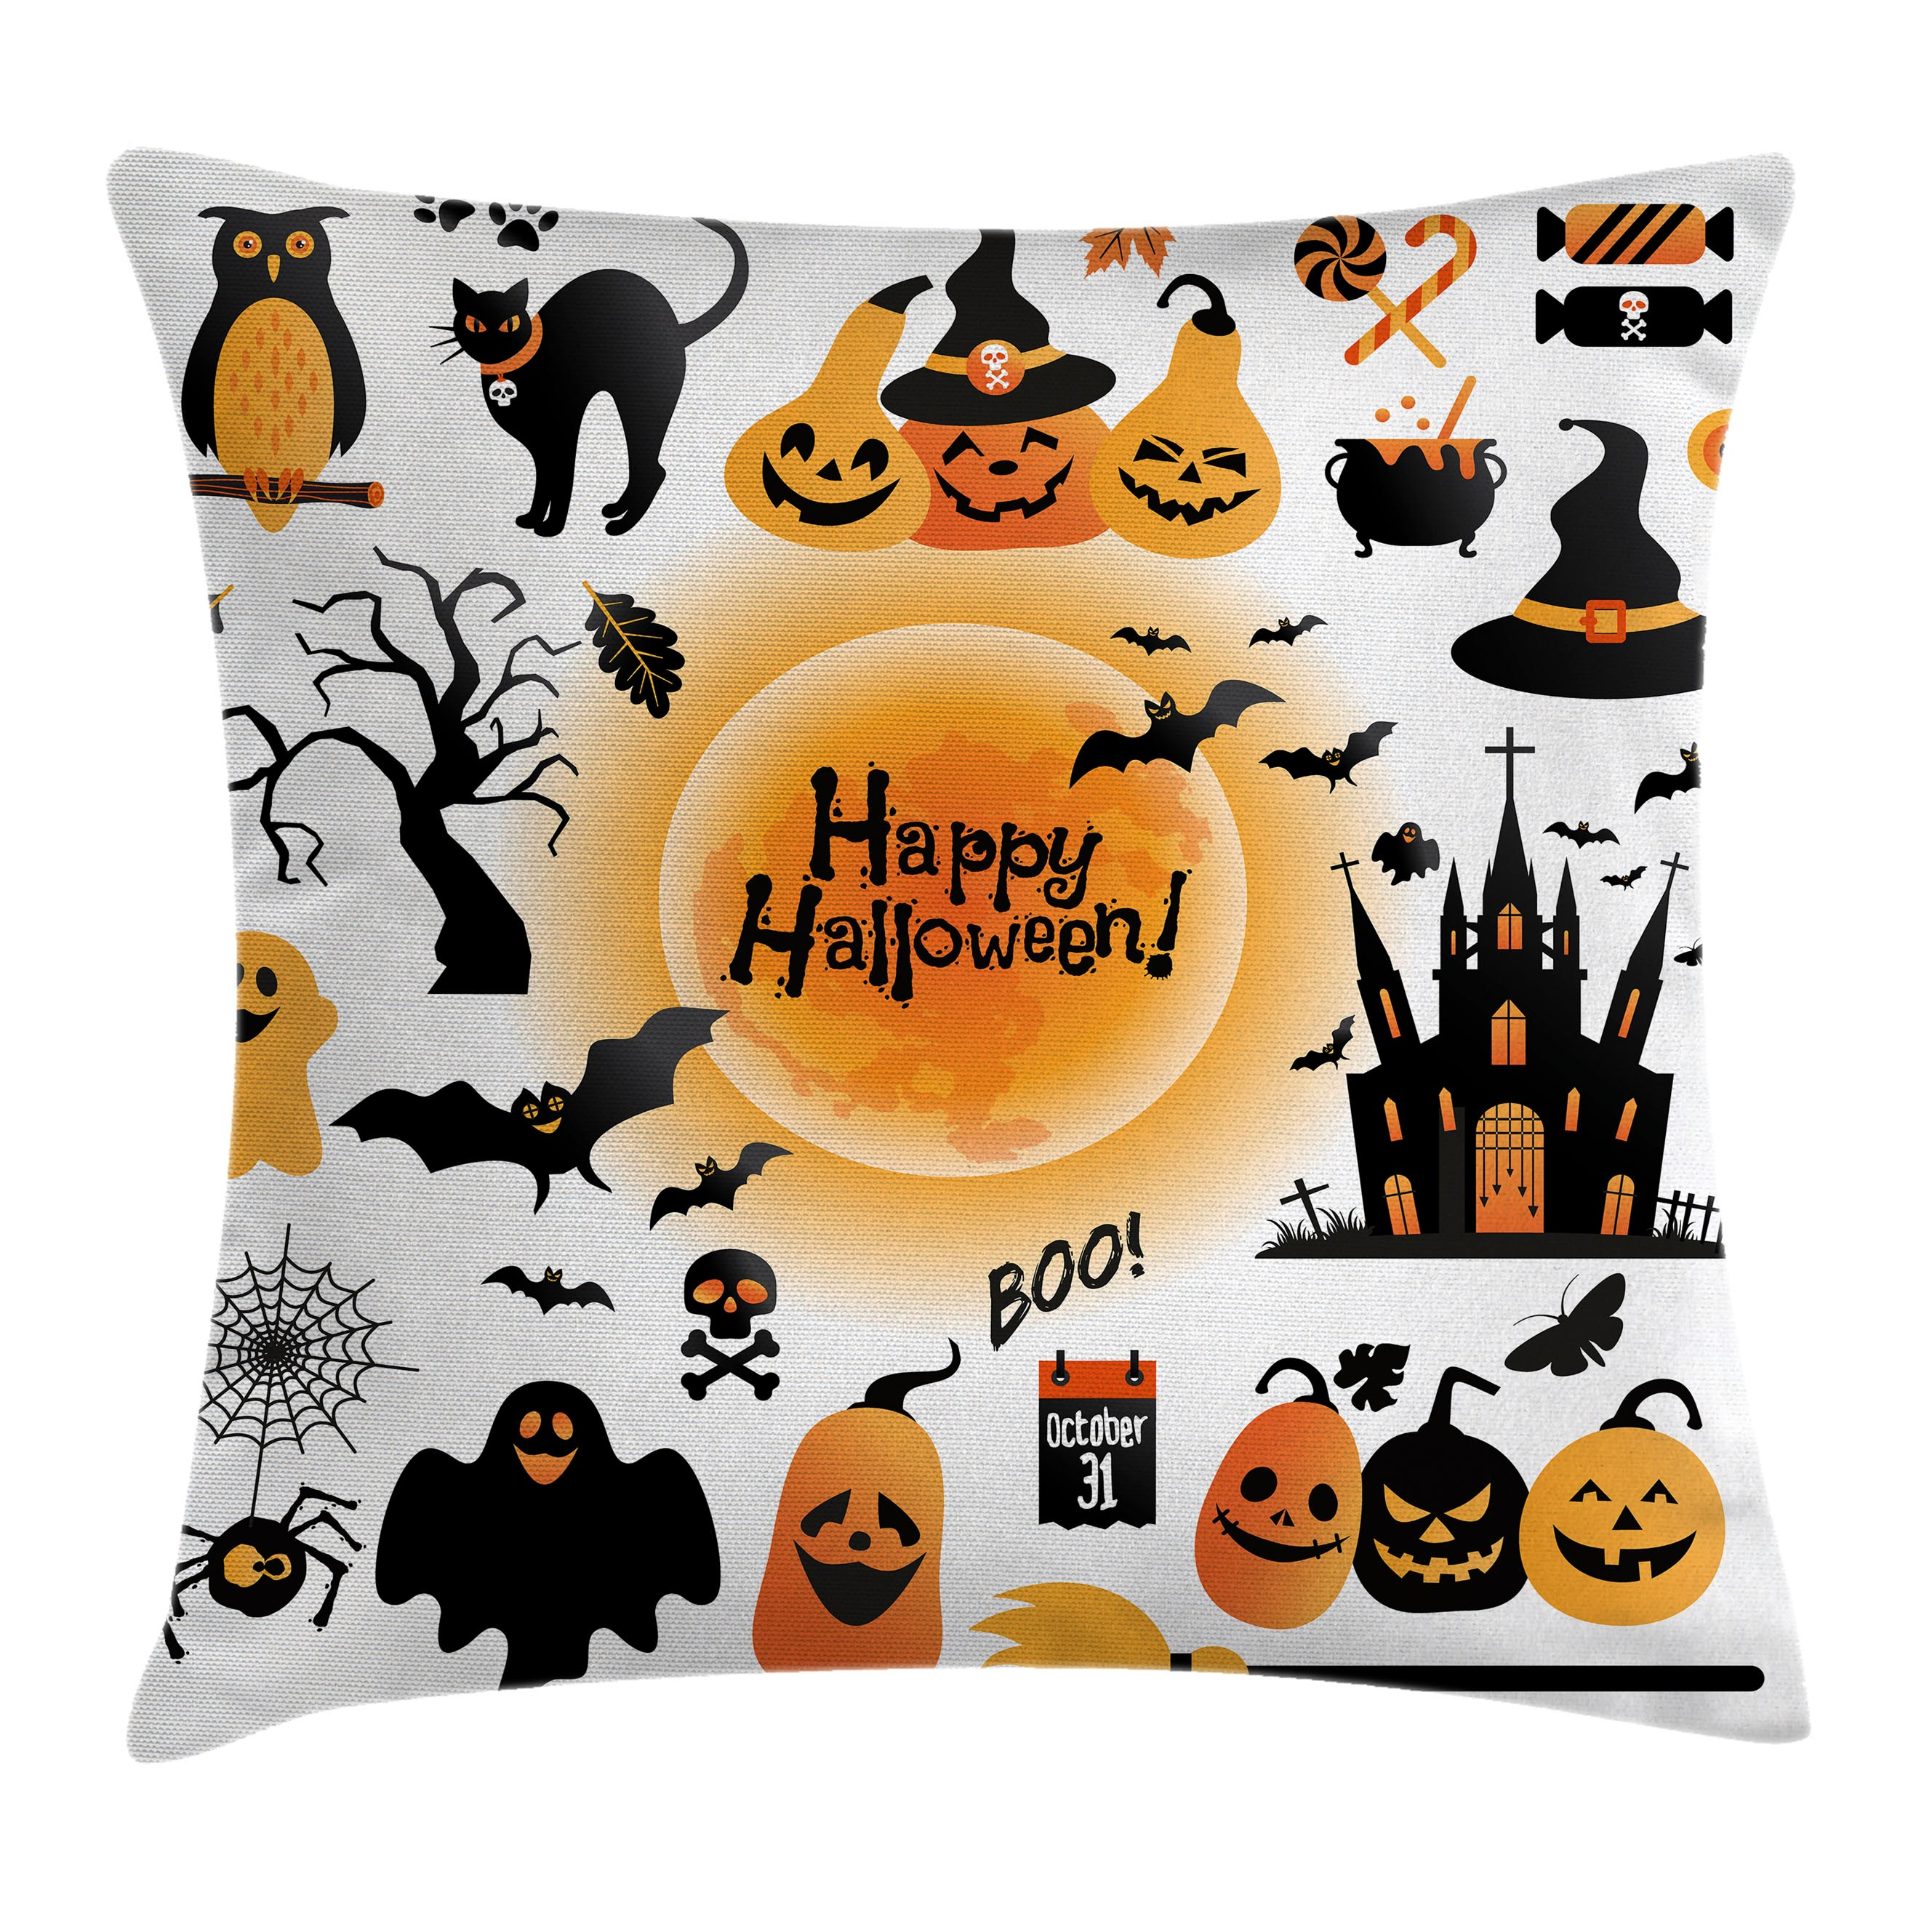 Halloween Decorations Throw Pillow Cushion Cover, All Hallows Day Objects Haunted House Owl and Trick or Treat Candy, Decorative Square Accent Pillow Case, 20 X 20 Inches, Orange Black, by Ambesonne